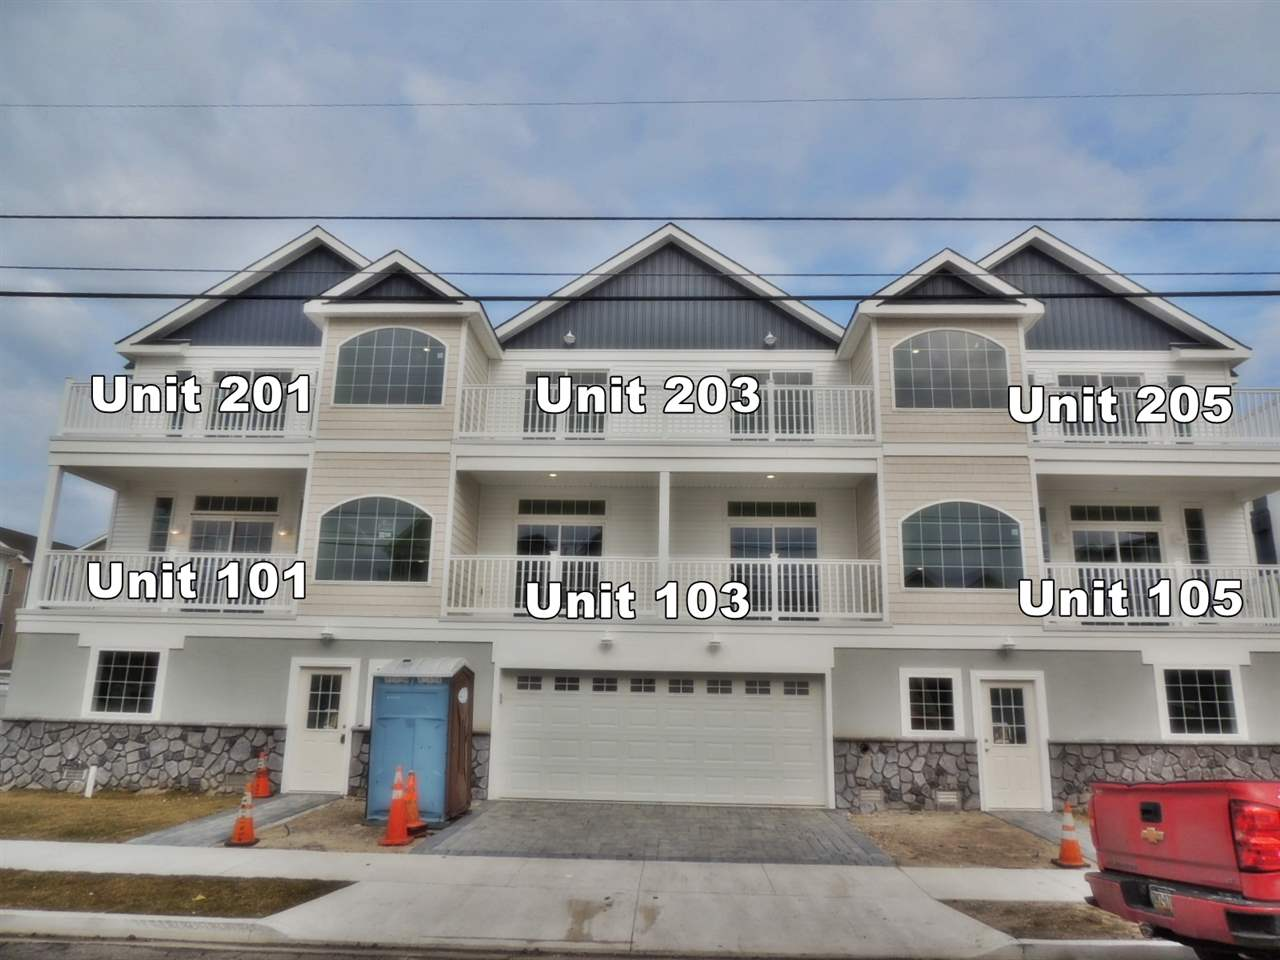 421, Unit 105 23rd Avenue, North Wildwood